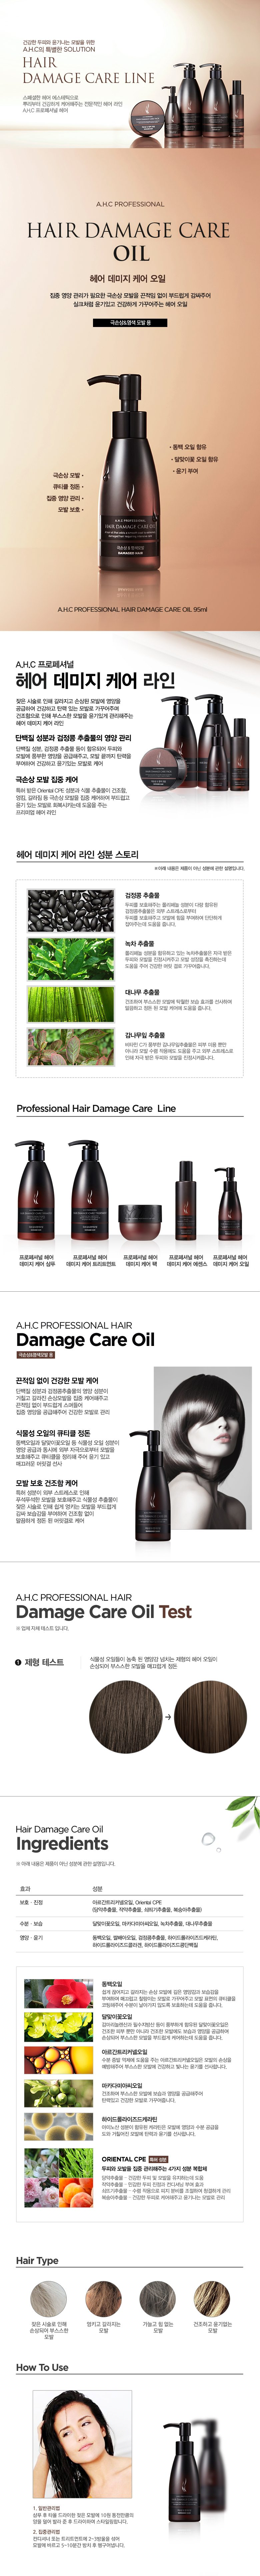 AHC Professional Hair Damage Care Oil 95ml malaysia singapore indonesia